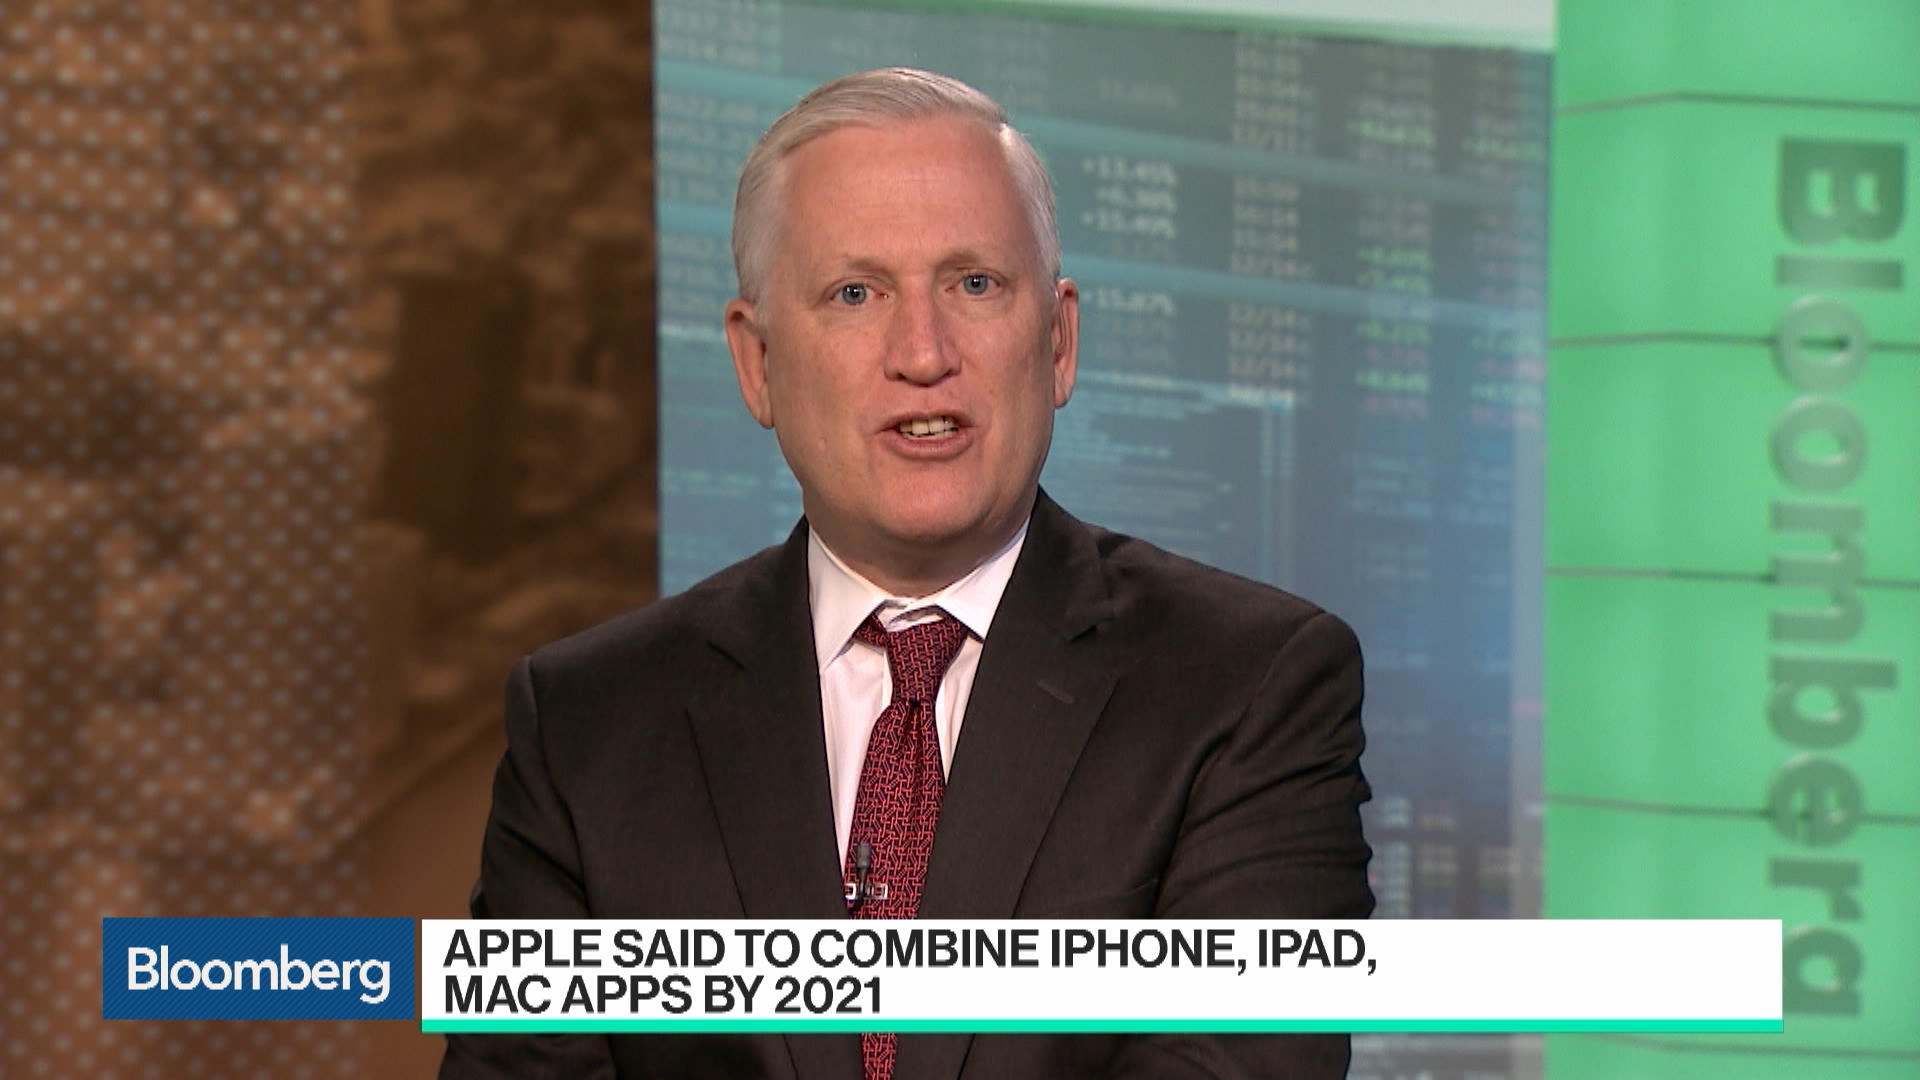 Apple Said to Combine iPhone, iPad, Mac Apps by 2021